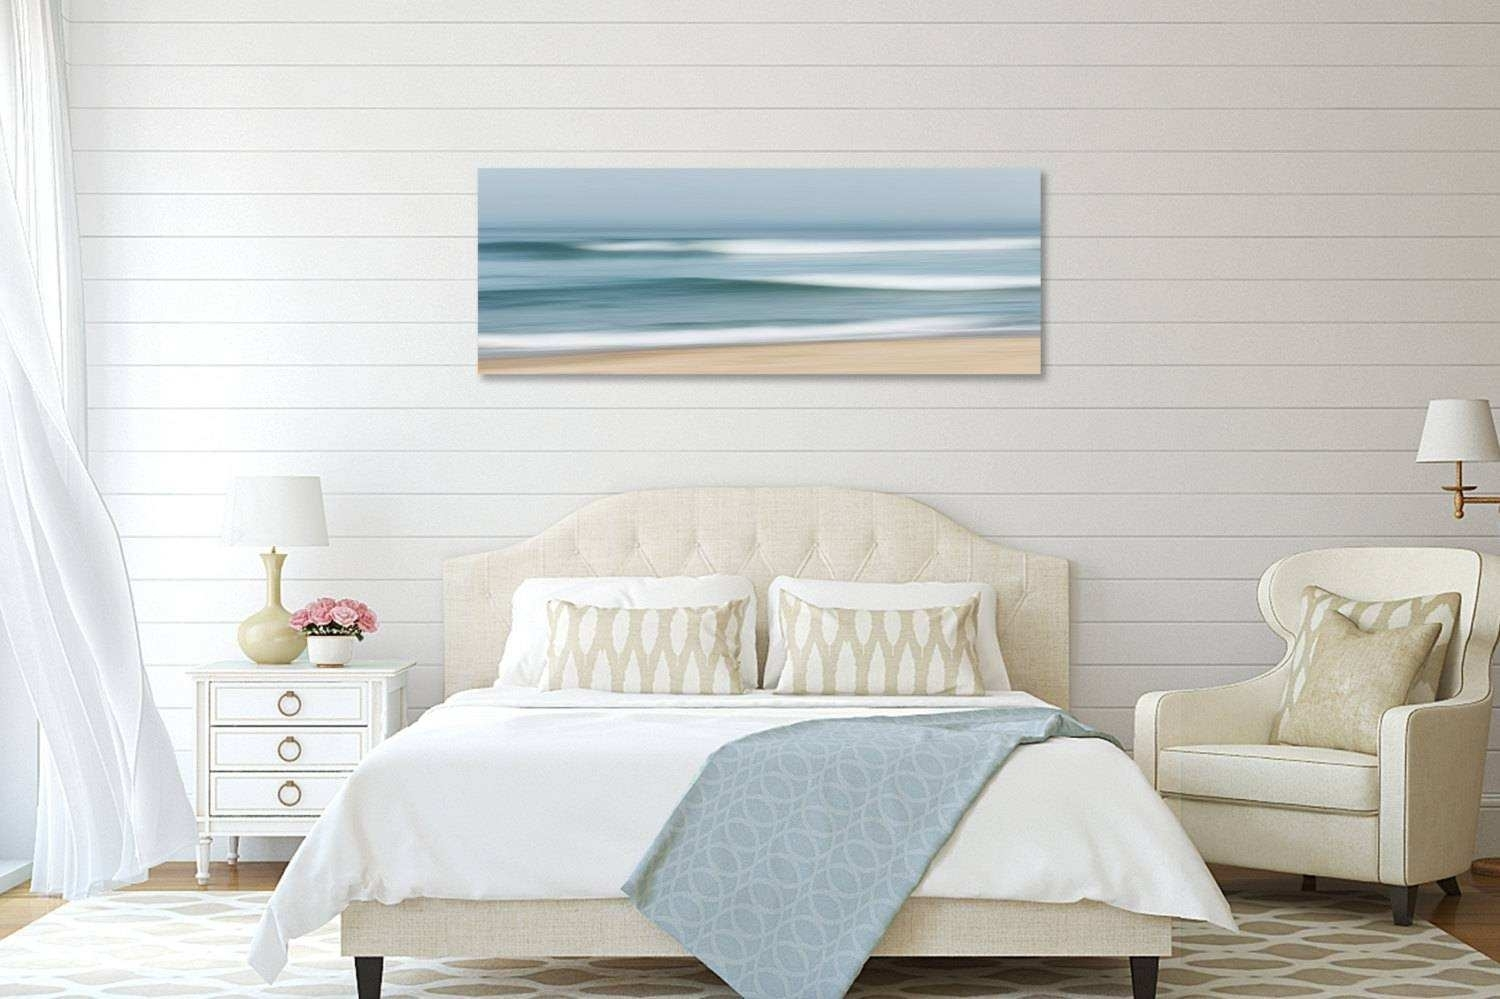 Canvas Decor Fresh 2018 Popular Coastal Wall Art Canvas | Painting Ideas throughout Coastal Wall Art (Image 6 of 20)